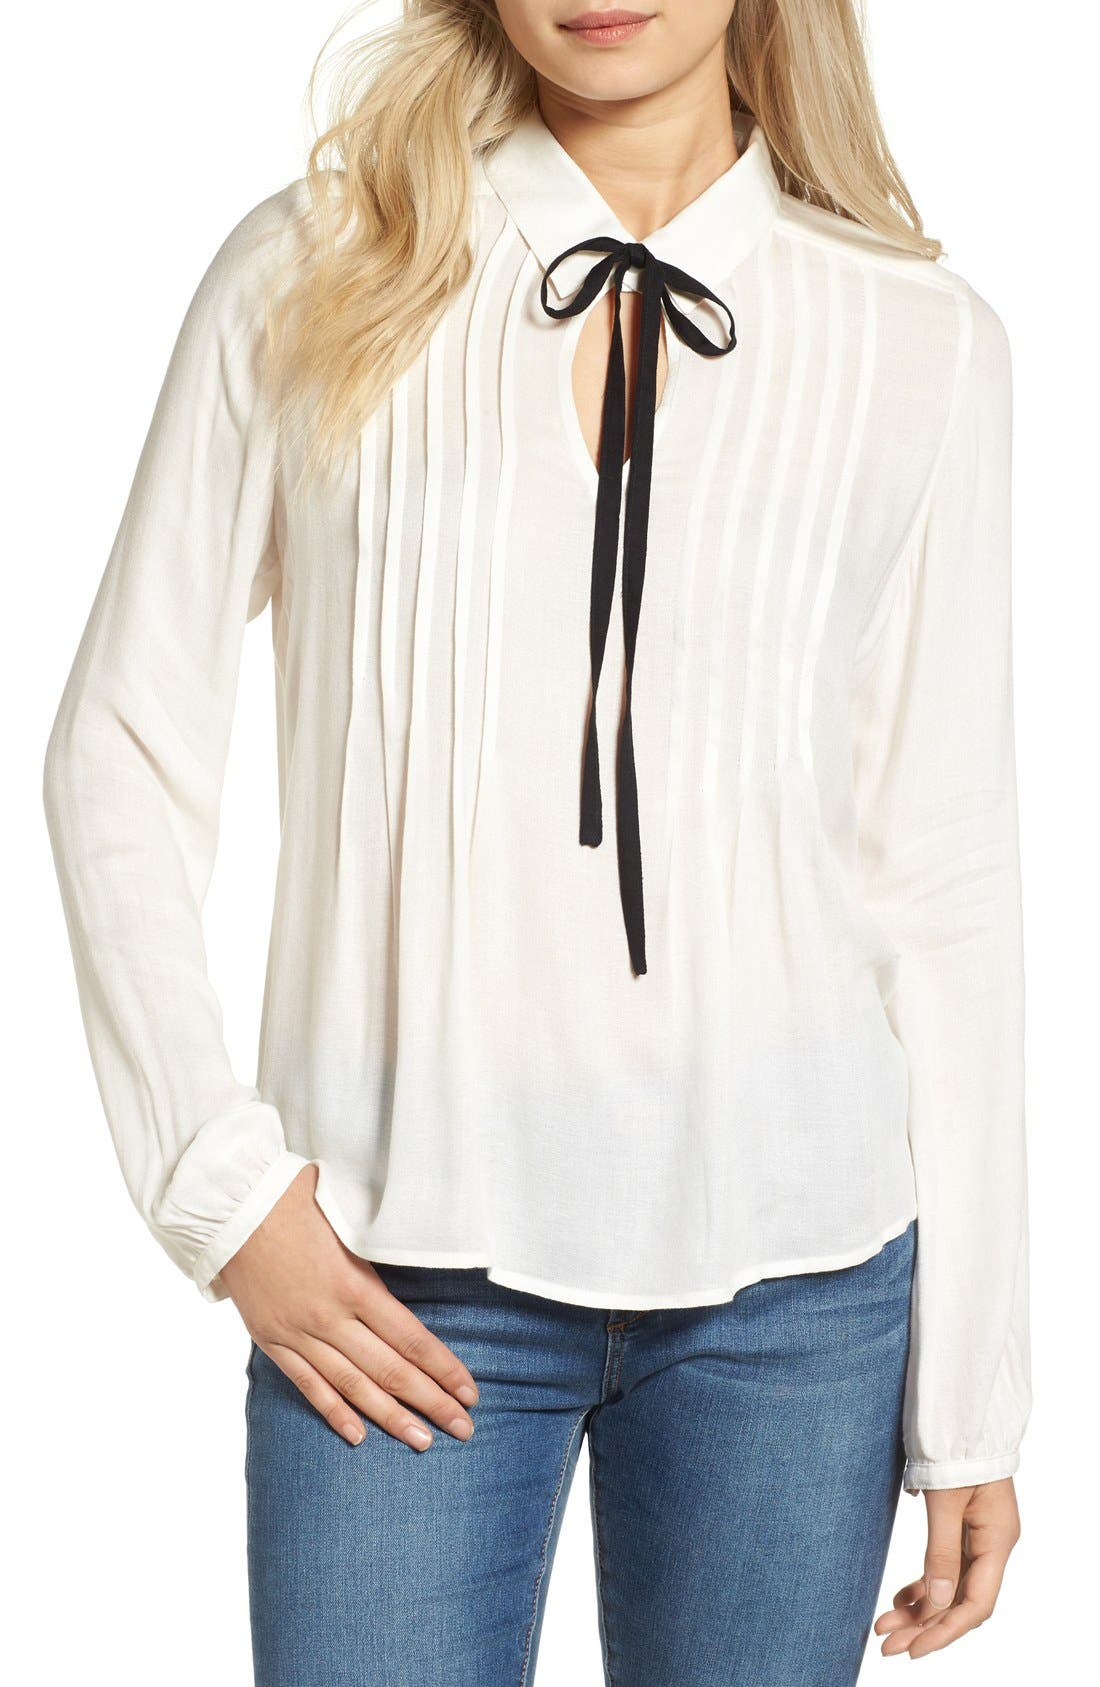 Alternate Image 1 Selected - BP. Tie Neck Blouse